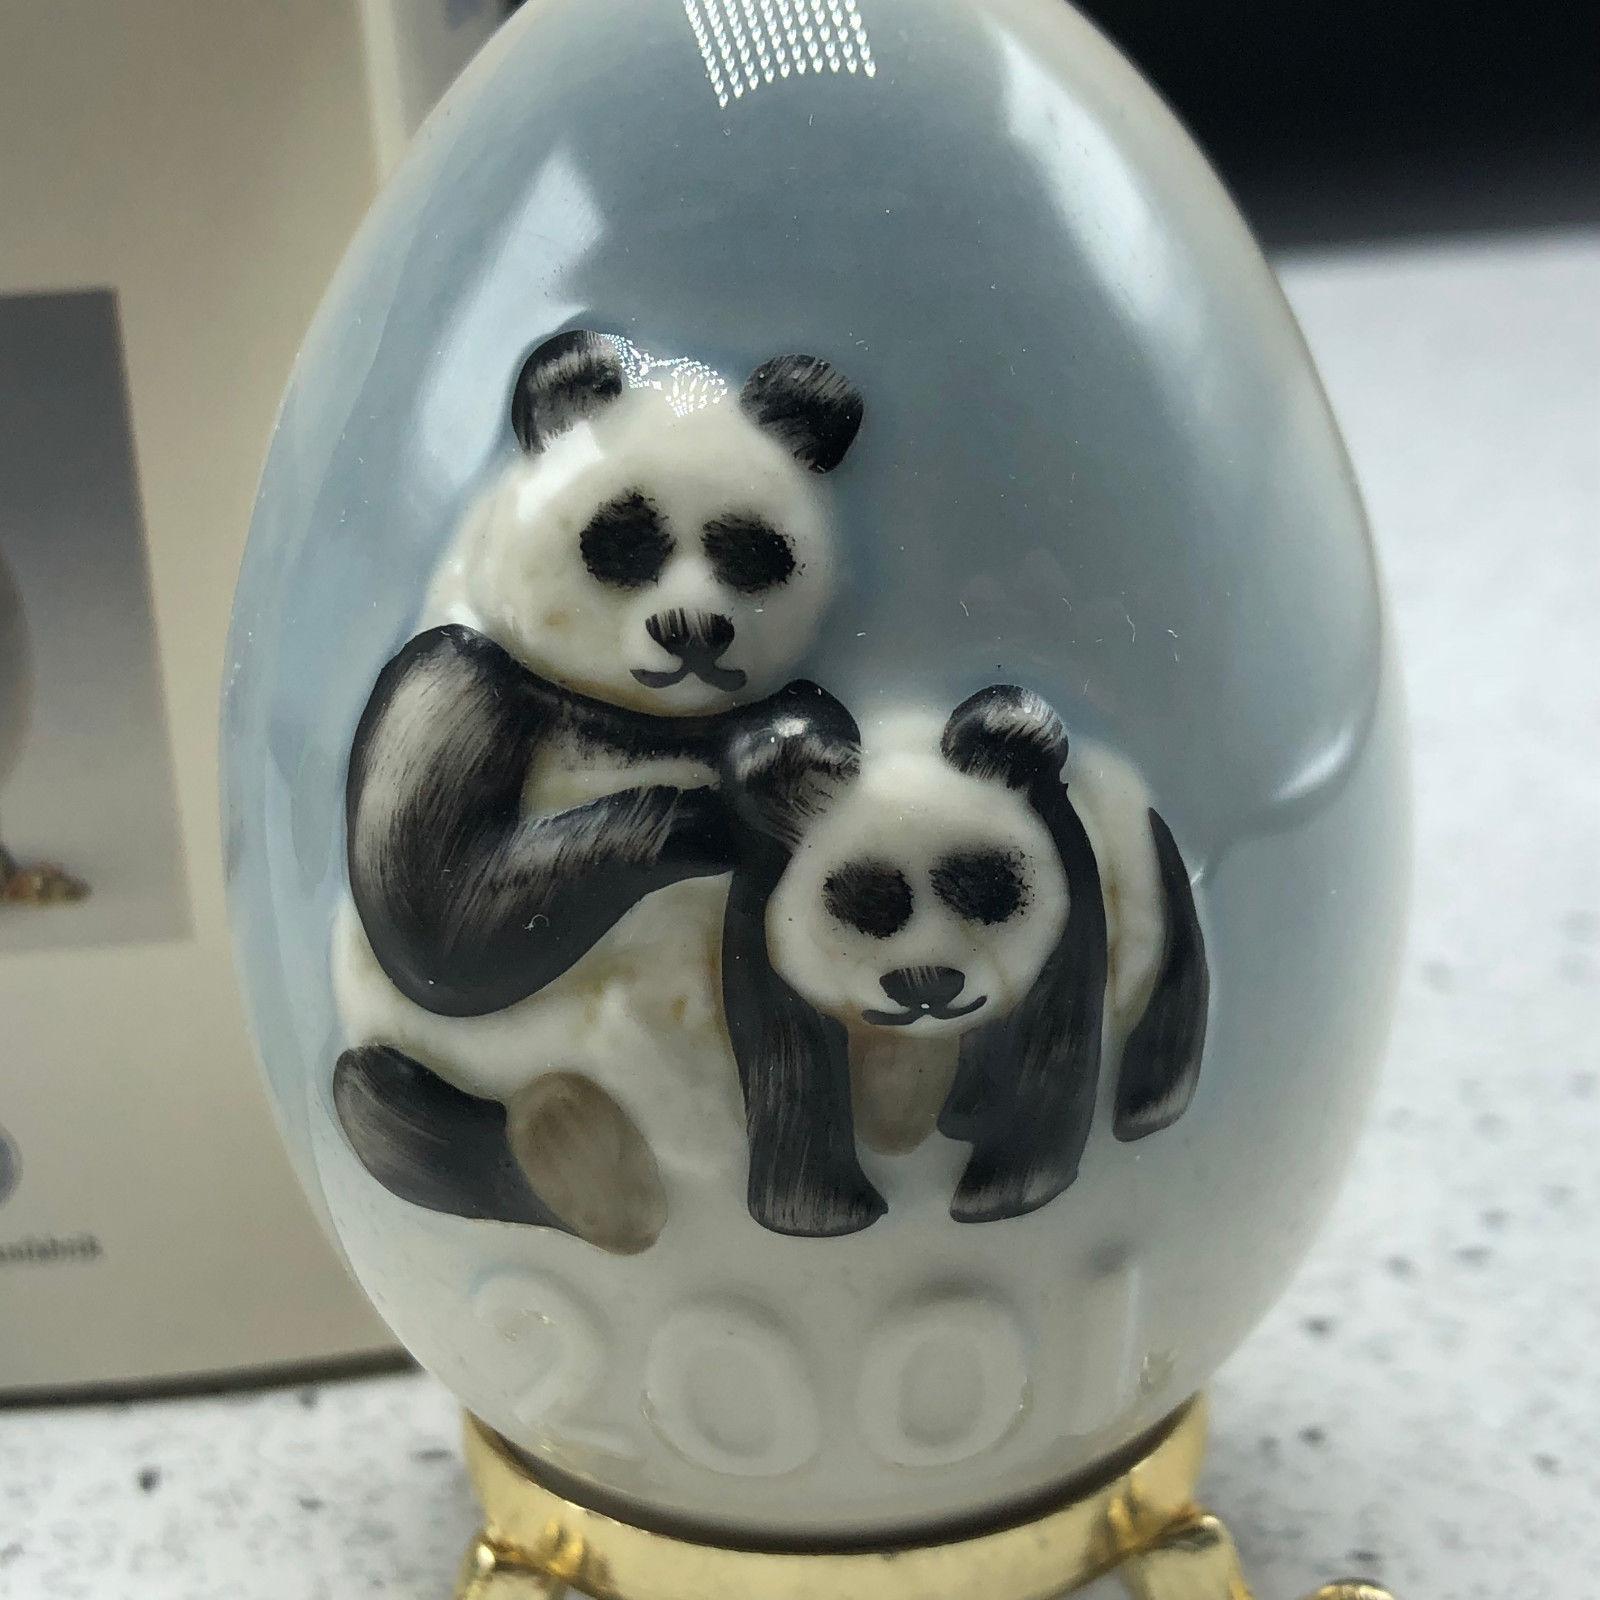 2001 GOEBEL ANNUAL EASTER EGG West Germany 24th edition figurine 102745 pandas